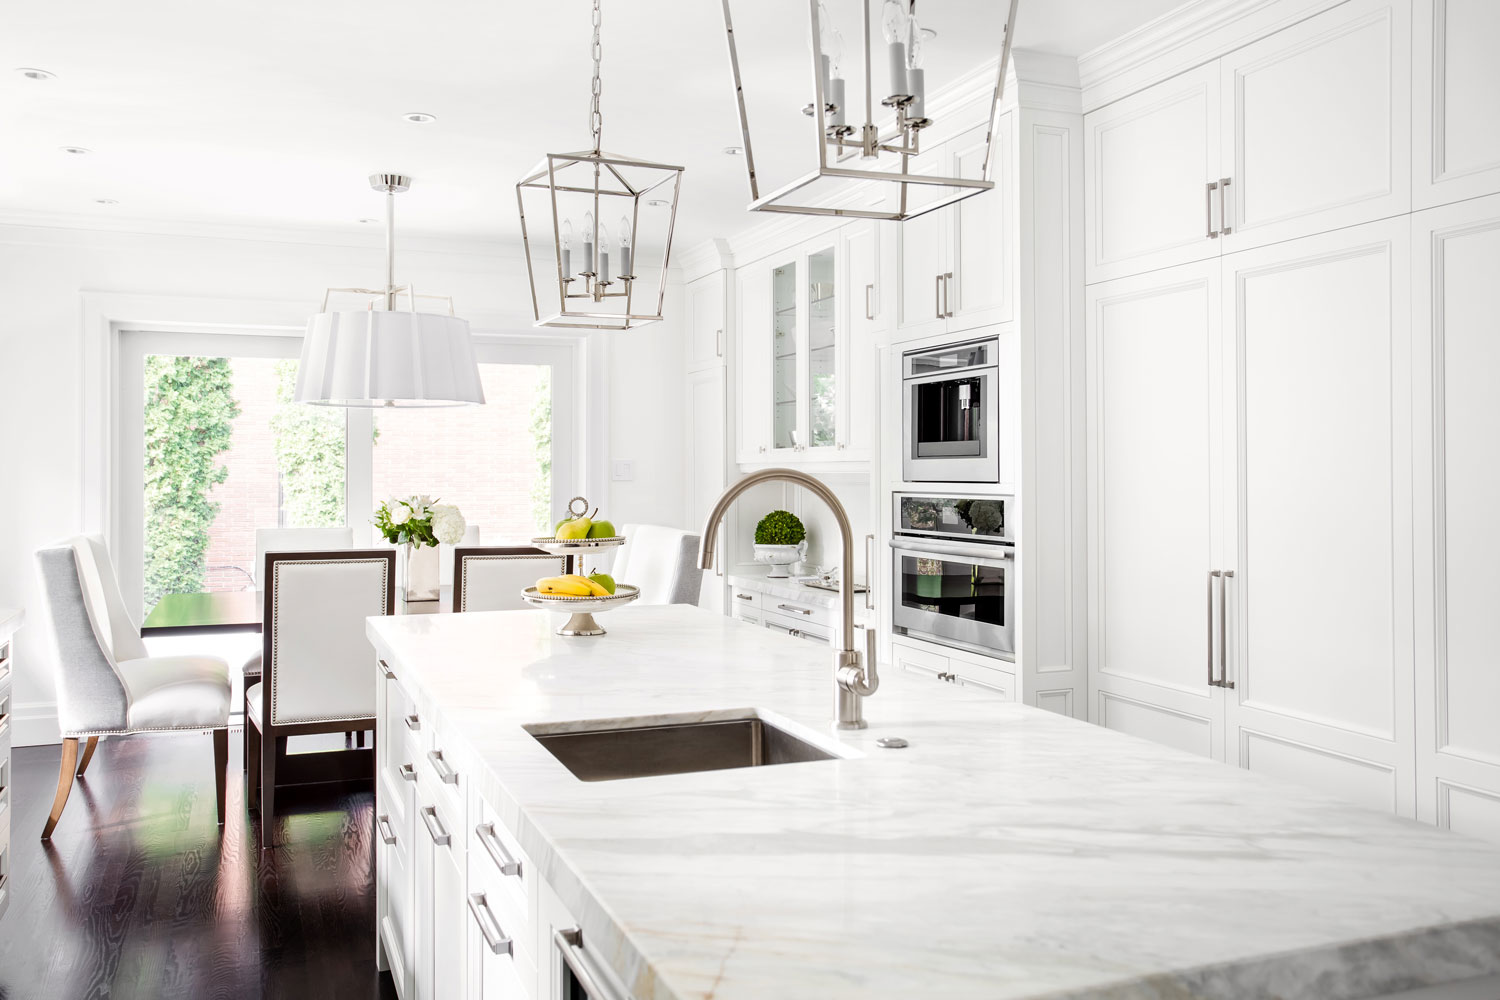 kitchen-interior-designer-custom-window-treatments-interior-eloquence-haymarket-virginia.jpg